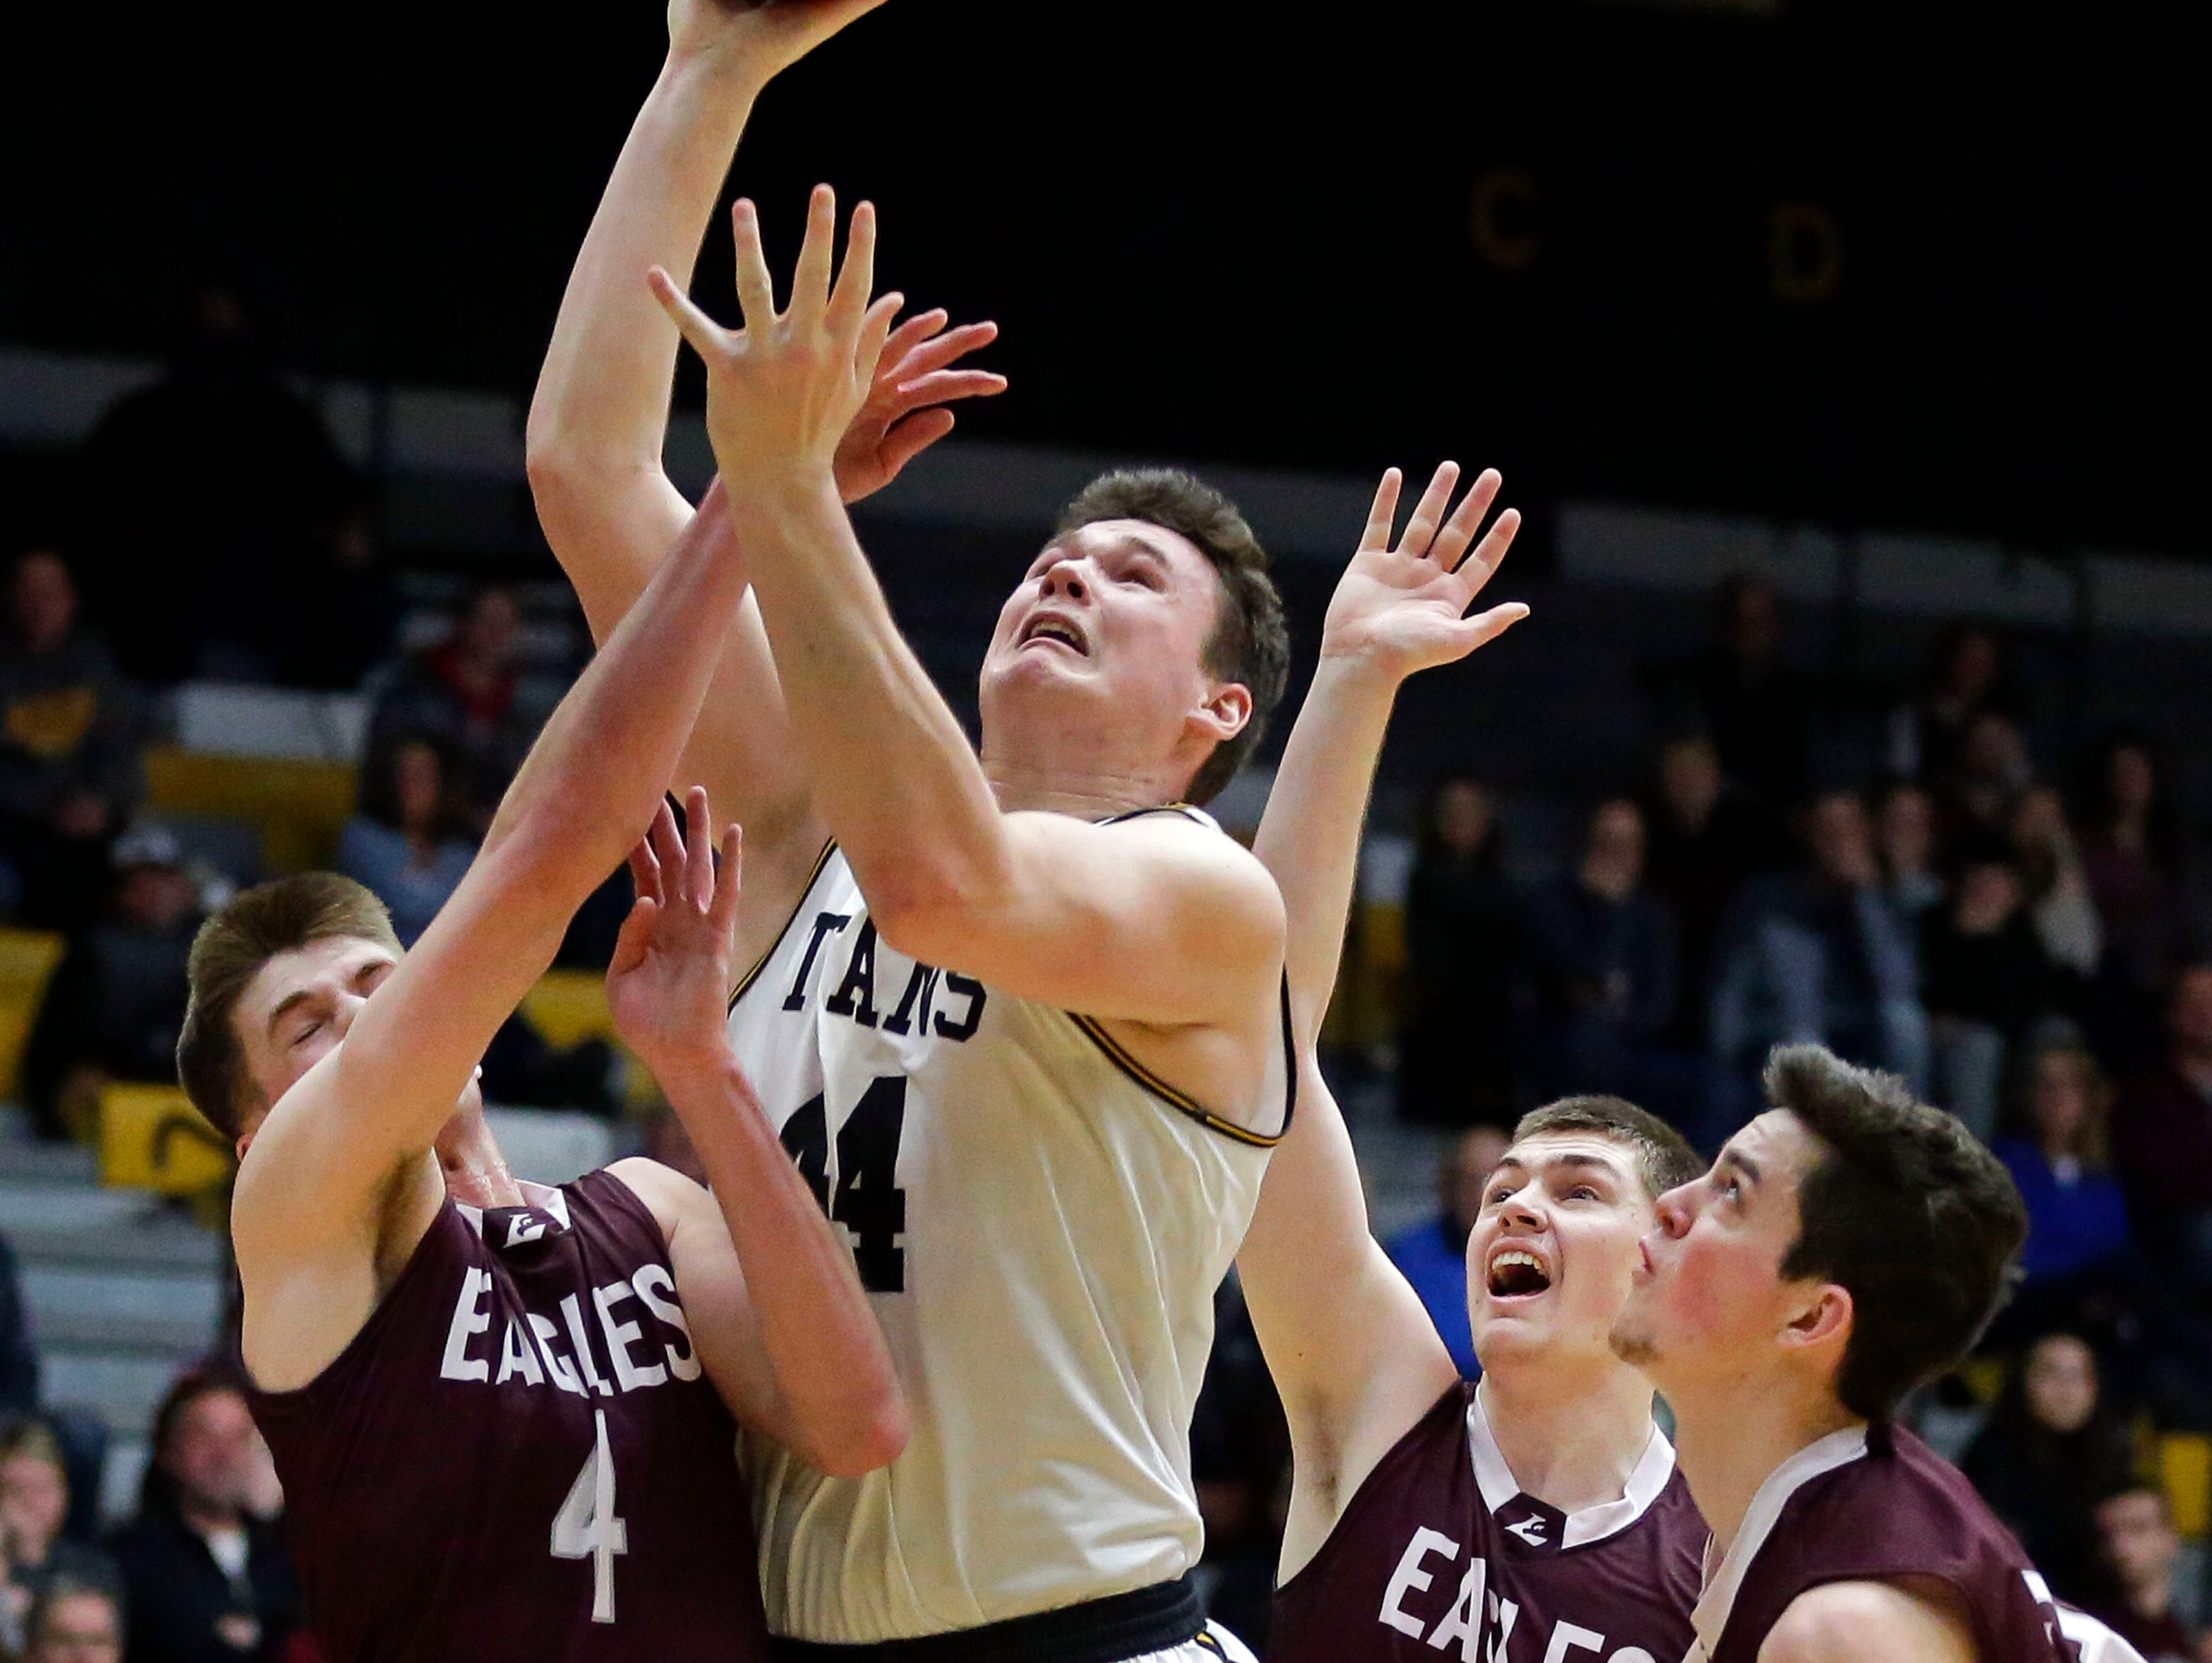 Jack Flynn of UW-Oshkosh goes up for a shot over Ethan Anderson, left, Wyatt Cook, center, and Brendon Manning of UW-La Crosse in Wisconsin Intercollegiate Athletic Conference basketball Saturday, January 19, 2019, at Kolf Sports Center in Oshkosh, Wis. 